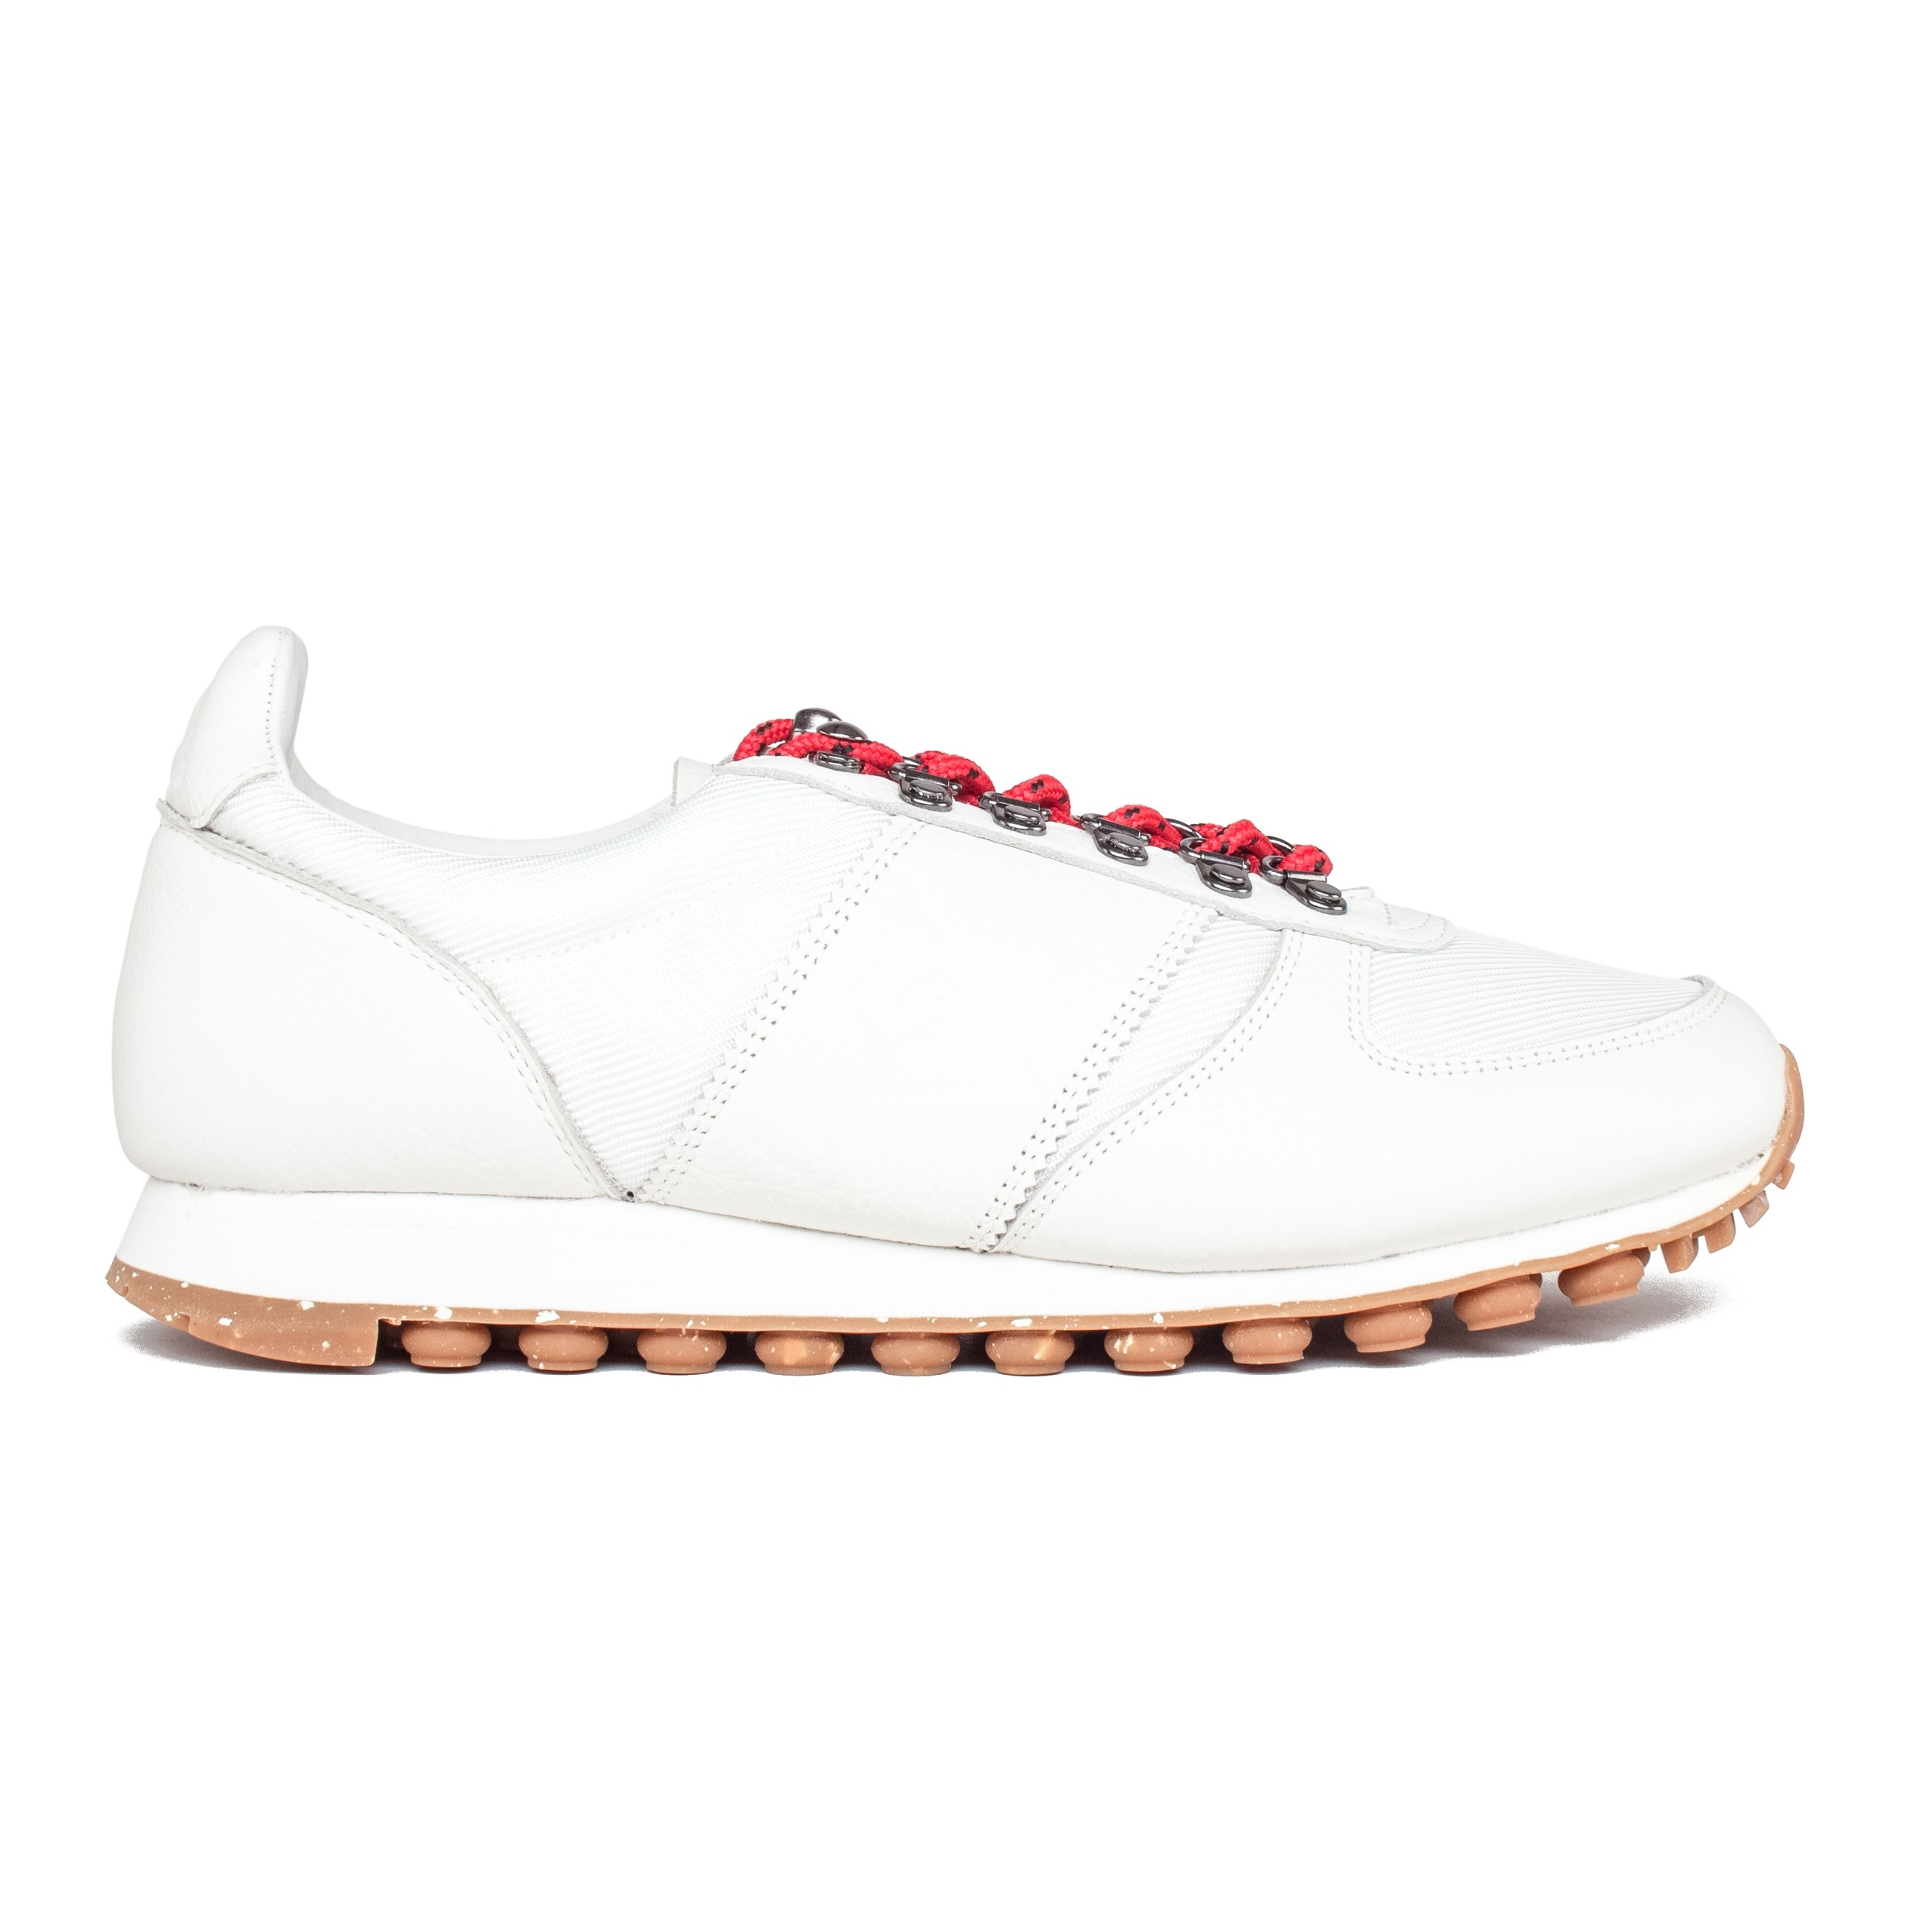 Le Coq Sportif Turbostyle sneakers buy cheap browse buy cheap reliable sale low price fee shipping huge surprise online E0osD